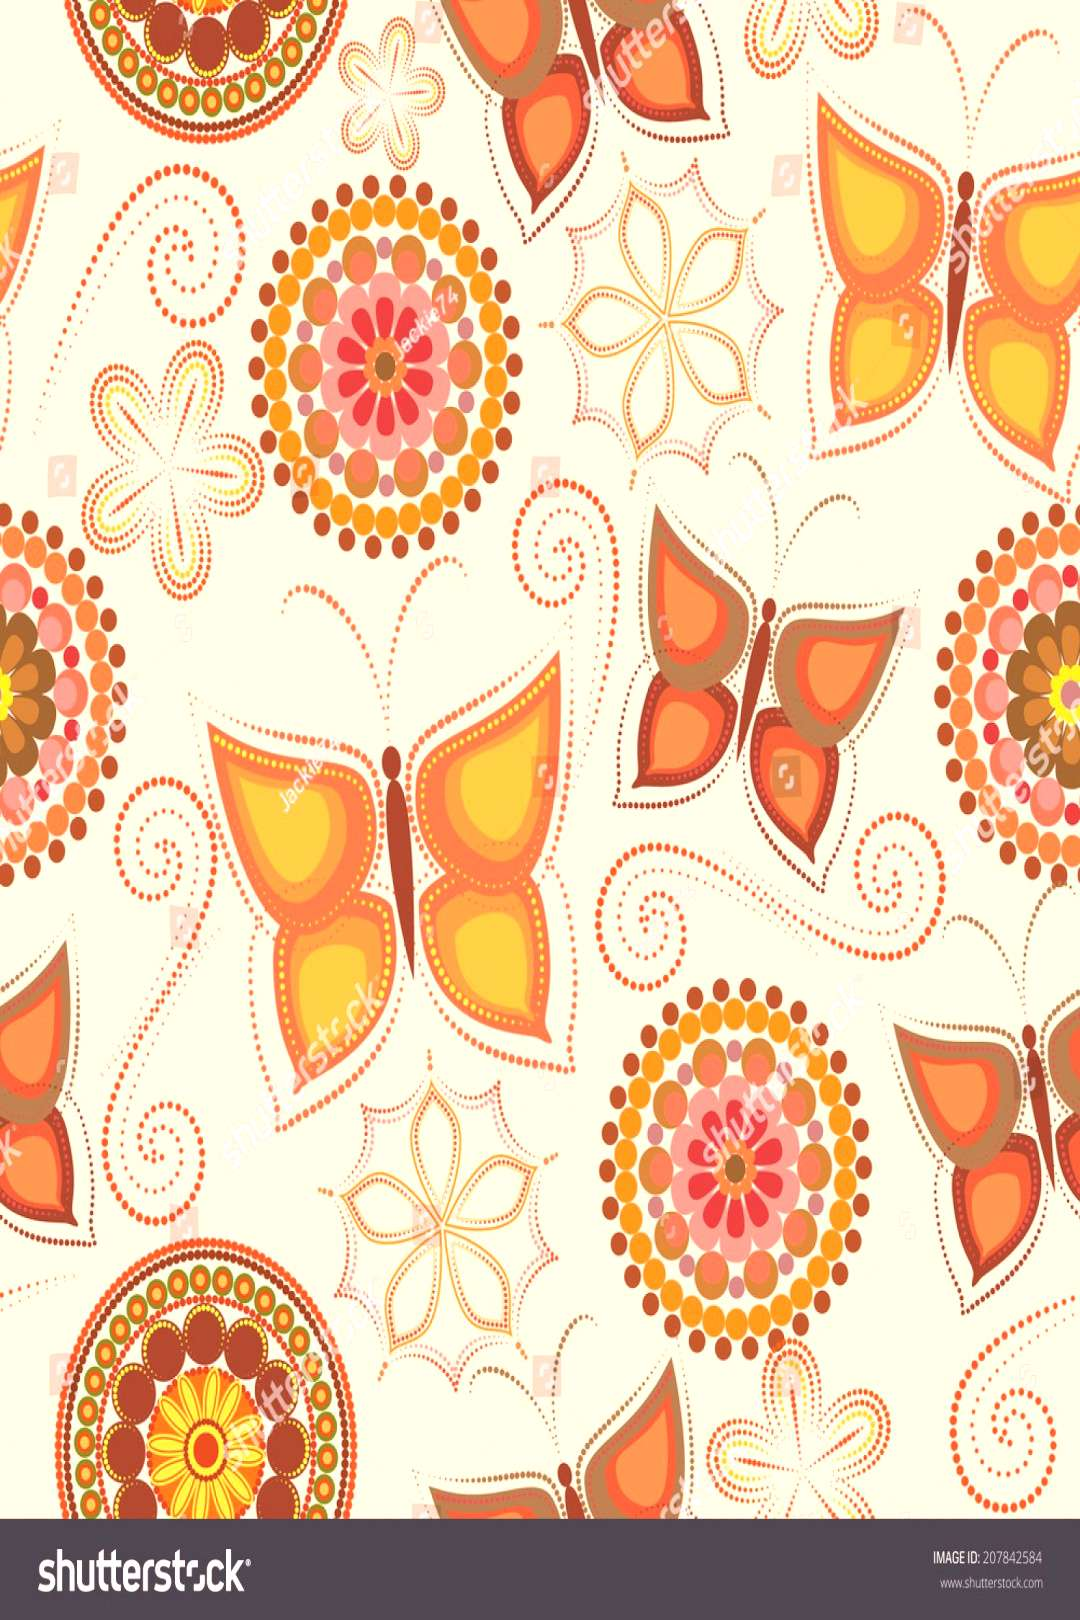 Seamless butterflies and circles pattern in vector. ,